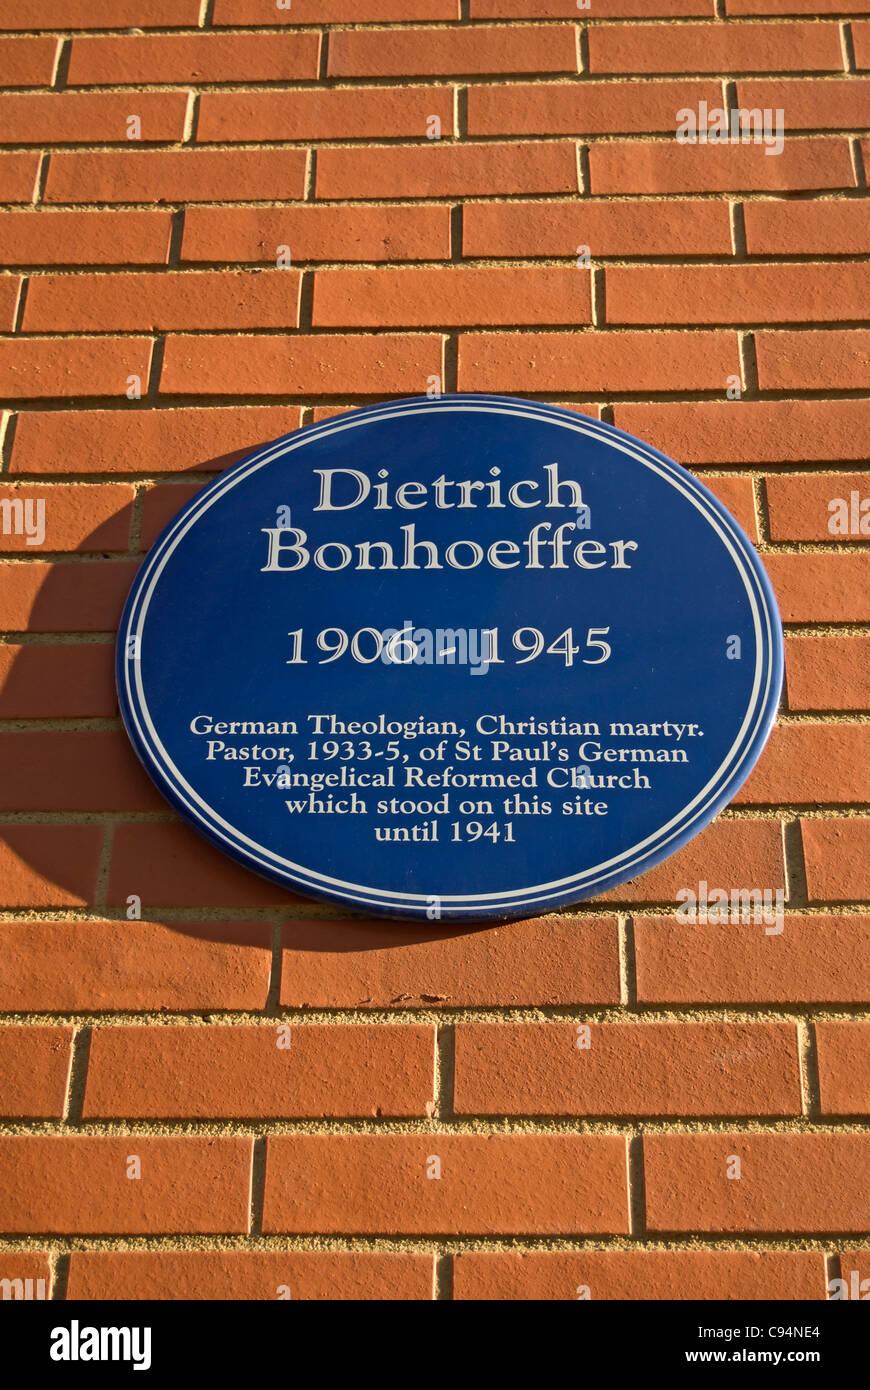 plaque to dietrich bonhoeffer, german theologian and pastor in london during the 1930s, later executed by the nazis - Stock Image